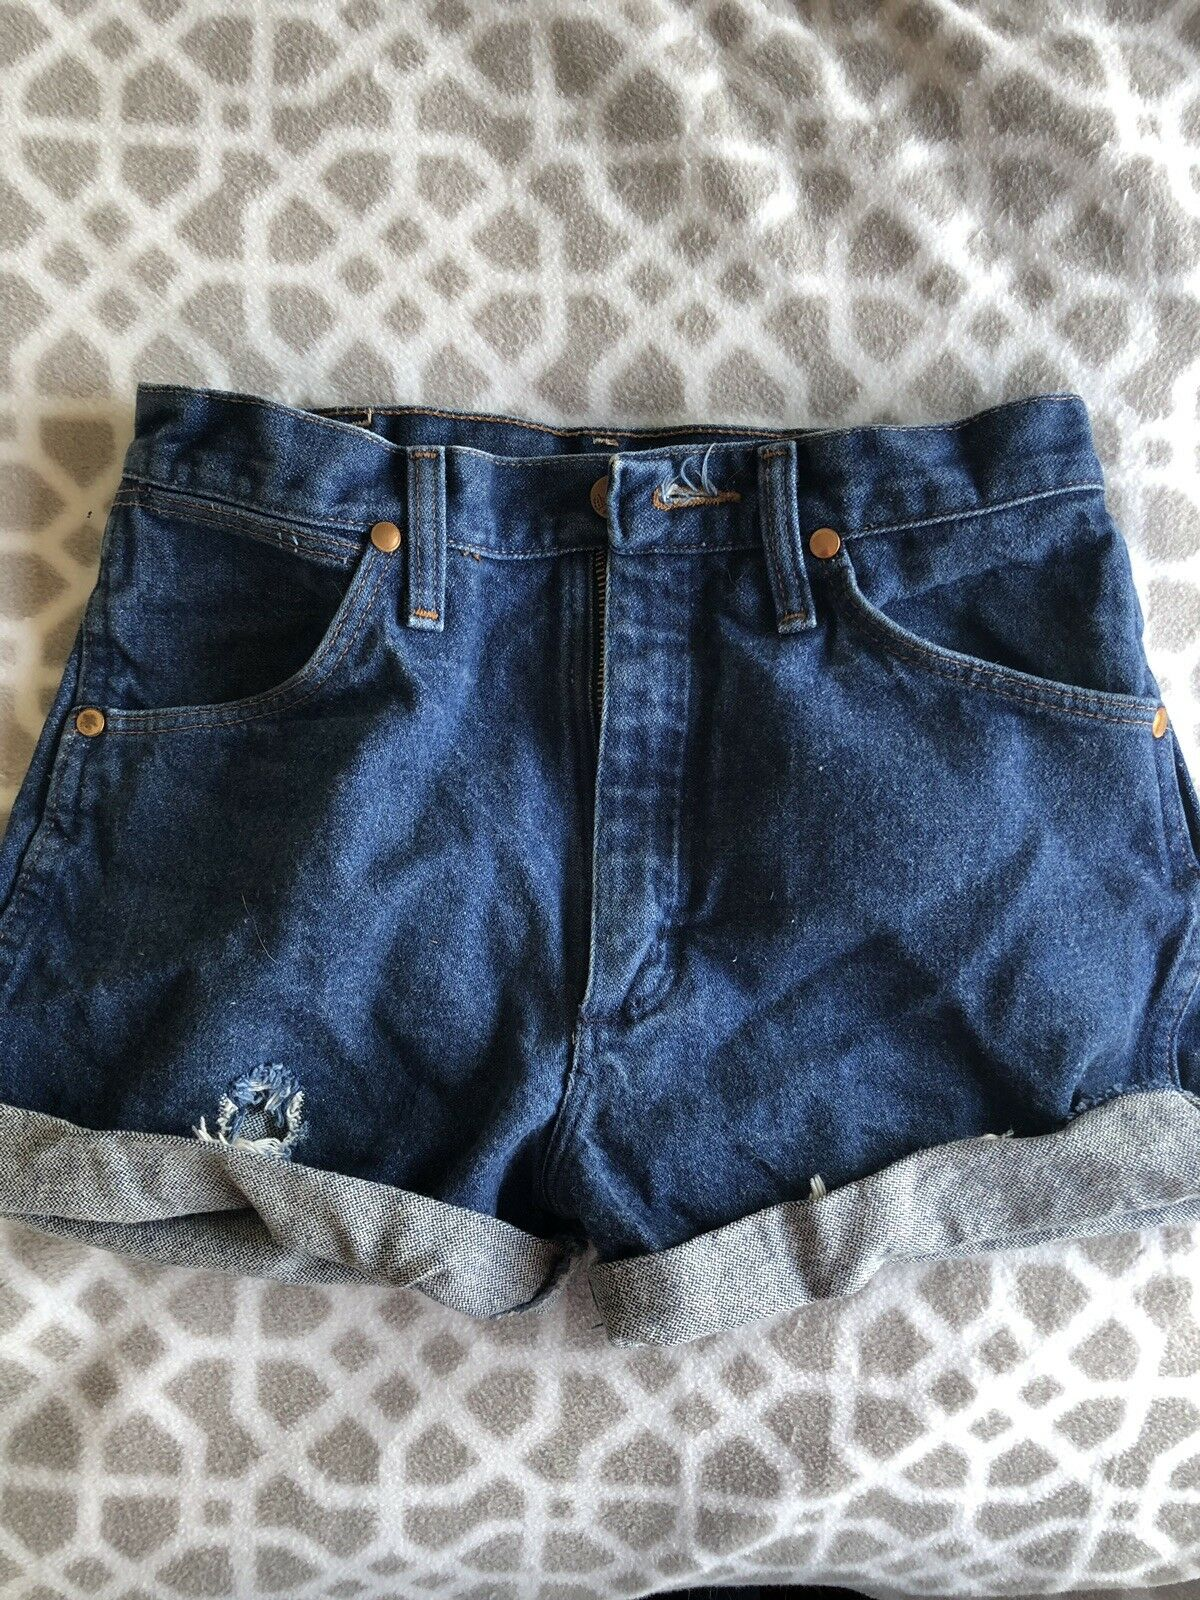 Vintage Mom Jean High Waisted Shorts from Wrangler- Size 0 2